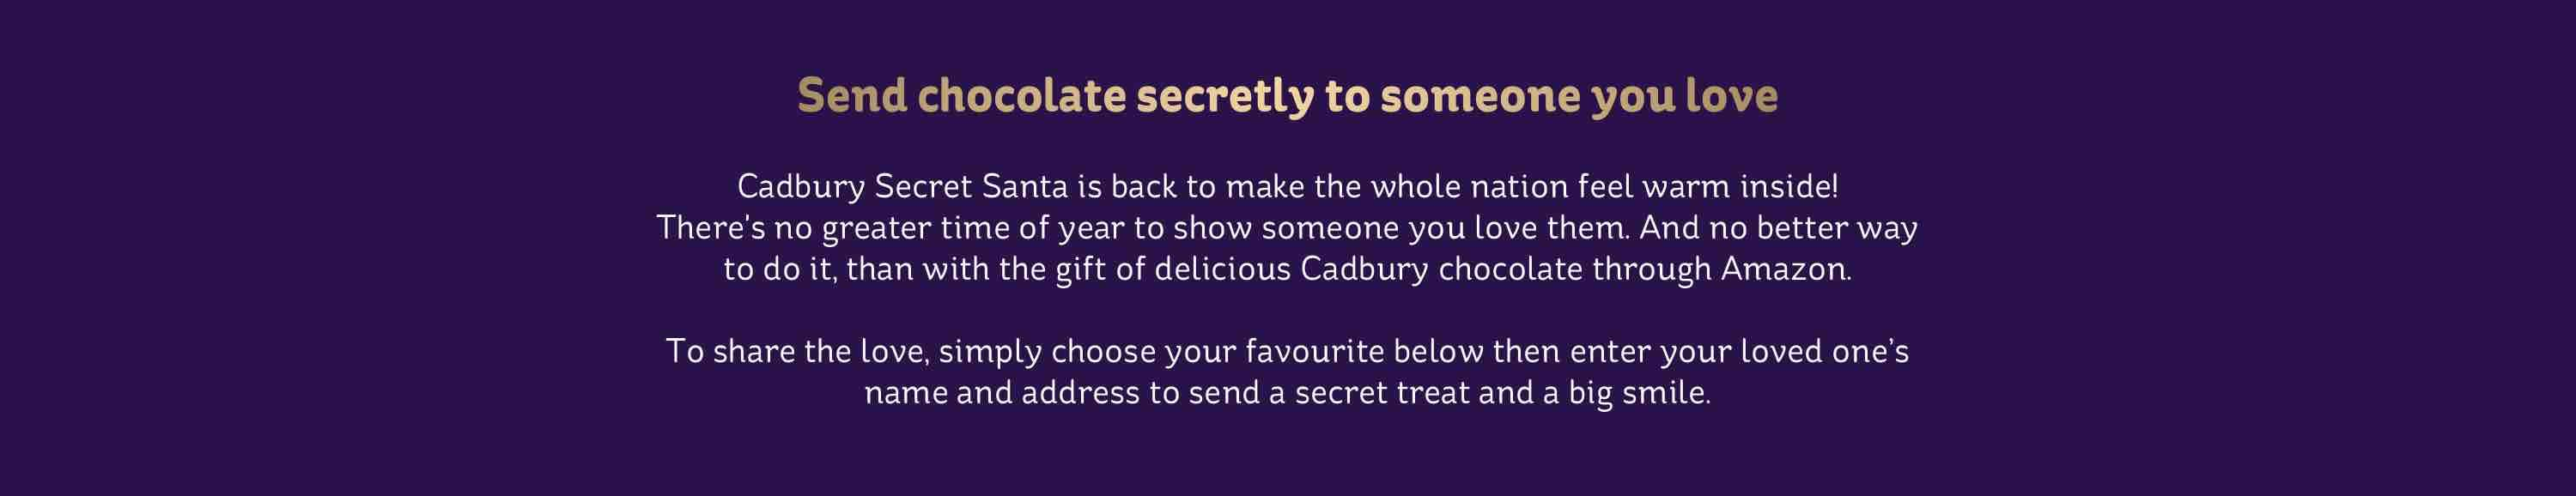 send chocolates secretly to someone you love. Cadbury Secret Santa is back to make the whole nation feel warm inside! There's no greater time of year to show someone you love them. And no better way to do it, than with the gift of delicious Cadbury chocolate through Amazon. To share the love, simply choose your favourite below then enter your loved ones name and address to send a secret treat and a big smile.